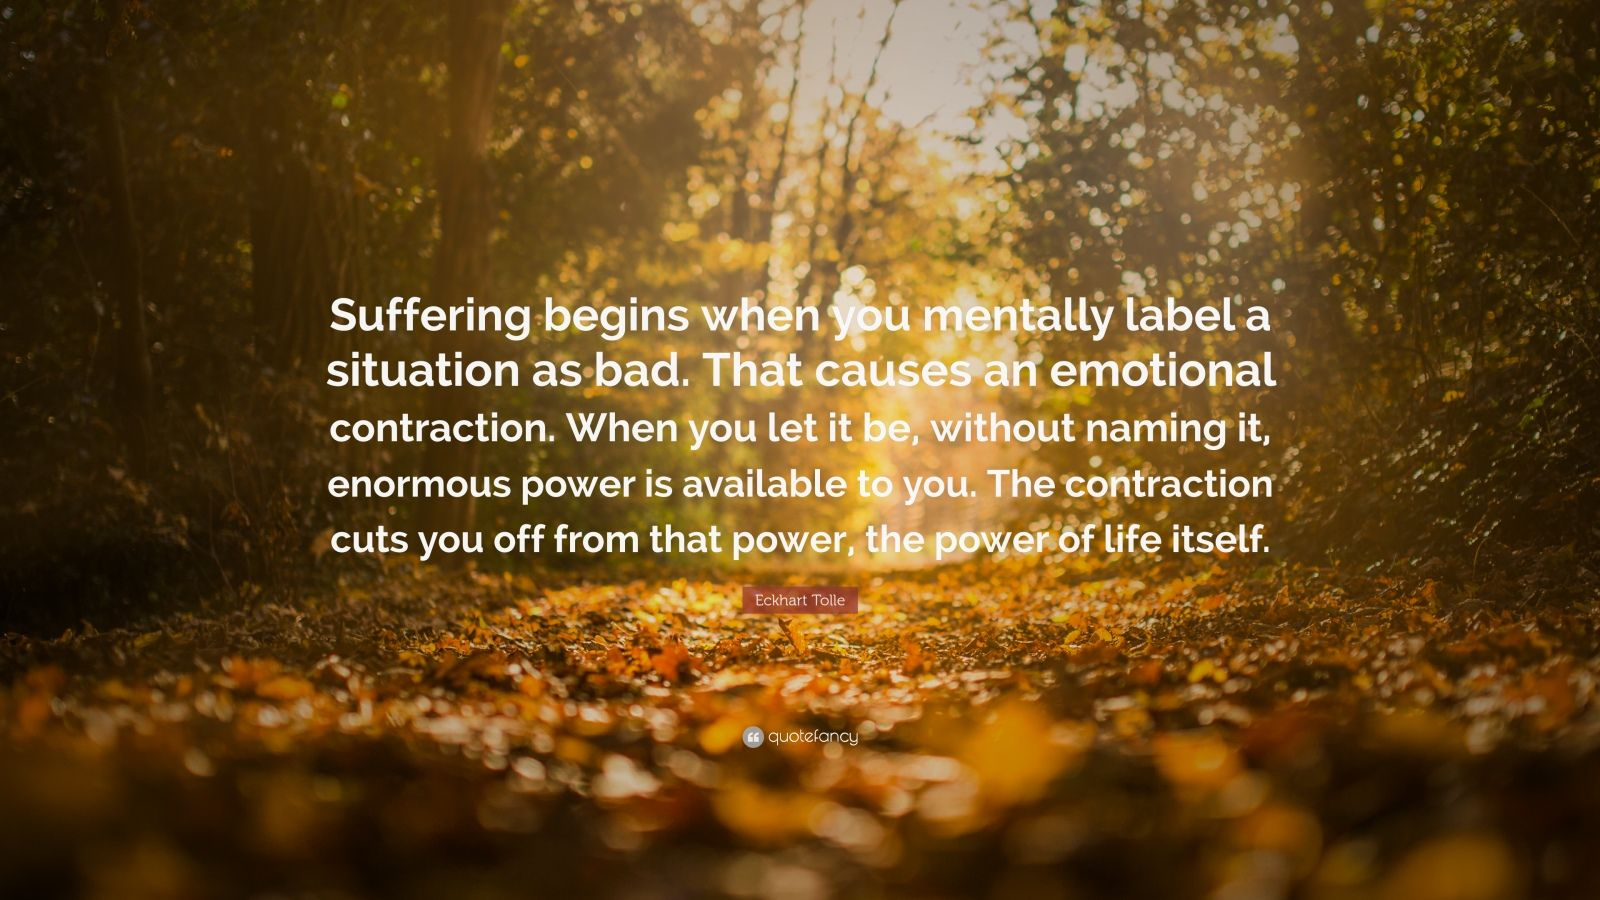 Motivational Wallpapers Without Quotes Eckhart Tolle Quote Suffering Begins When You Mentally